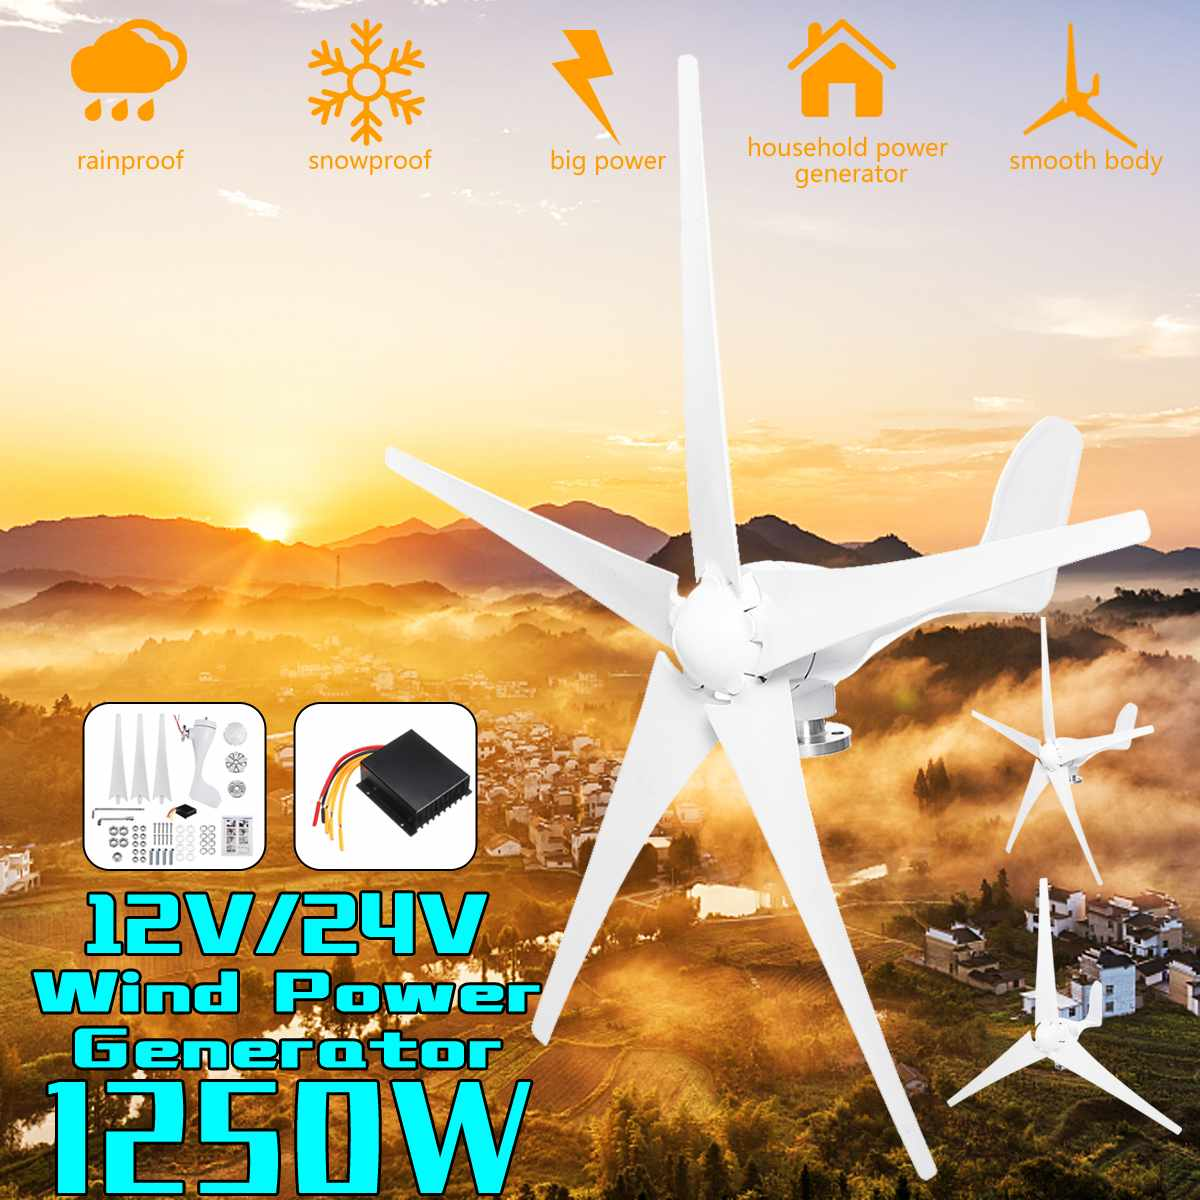 1250W Wind Power Turbines Generator 12V 24V 3/5 Wind Blades Option With Waterproof Charge Controller Fit for Home Or Camping1250W Wind Power Turbines Generator 12V 24V 3/5 Wind Blades Option With Waterproof Charge Controller Fit for Home Or Camping